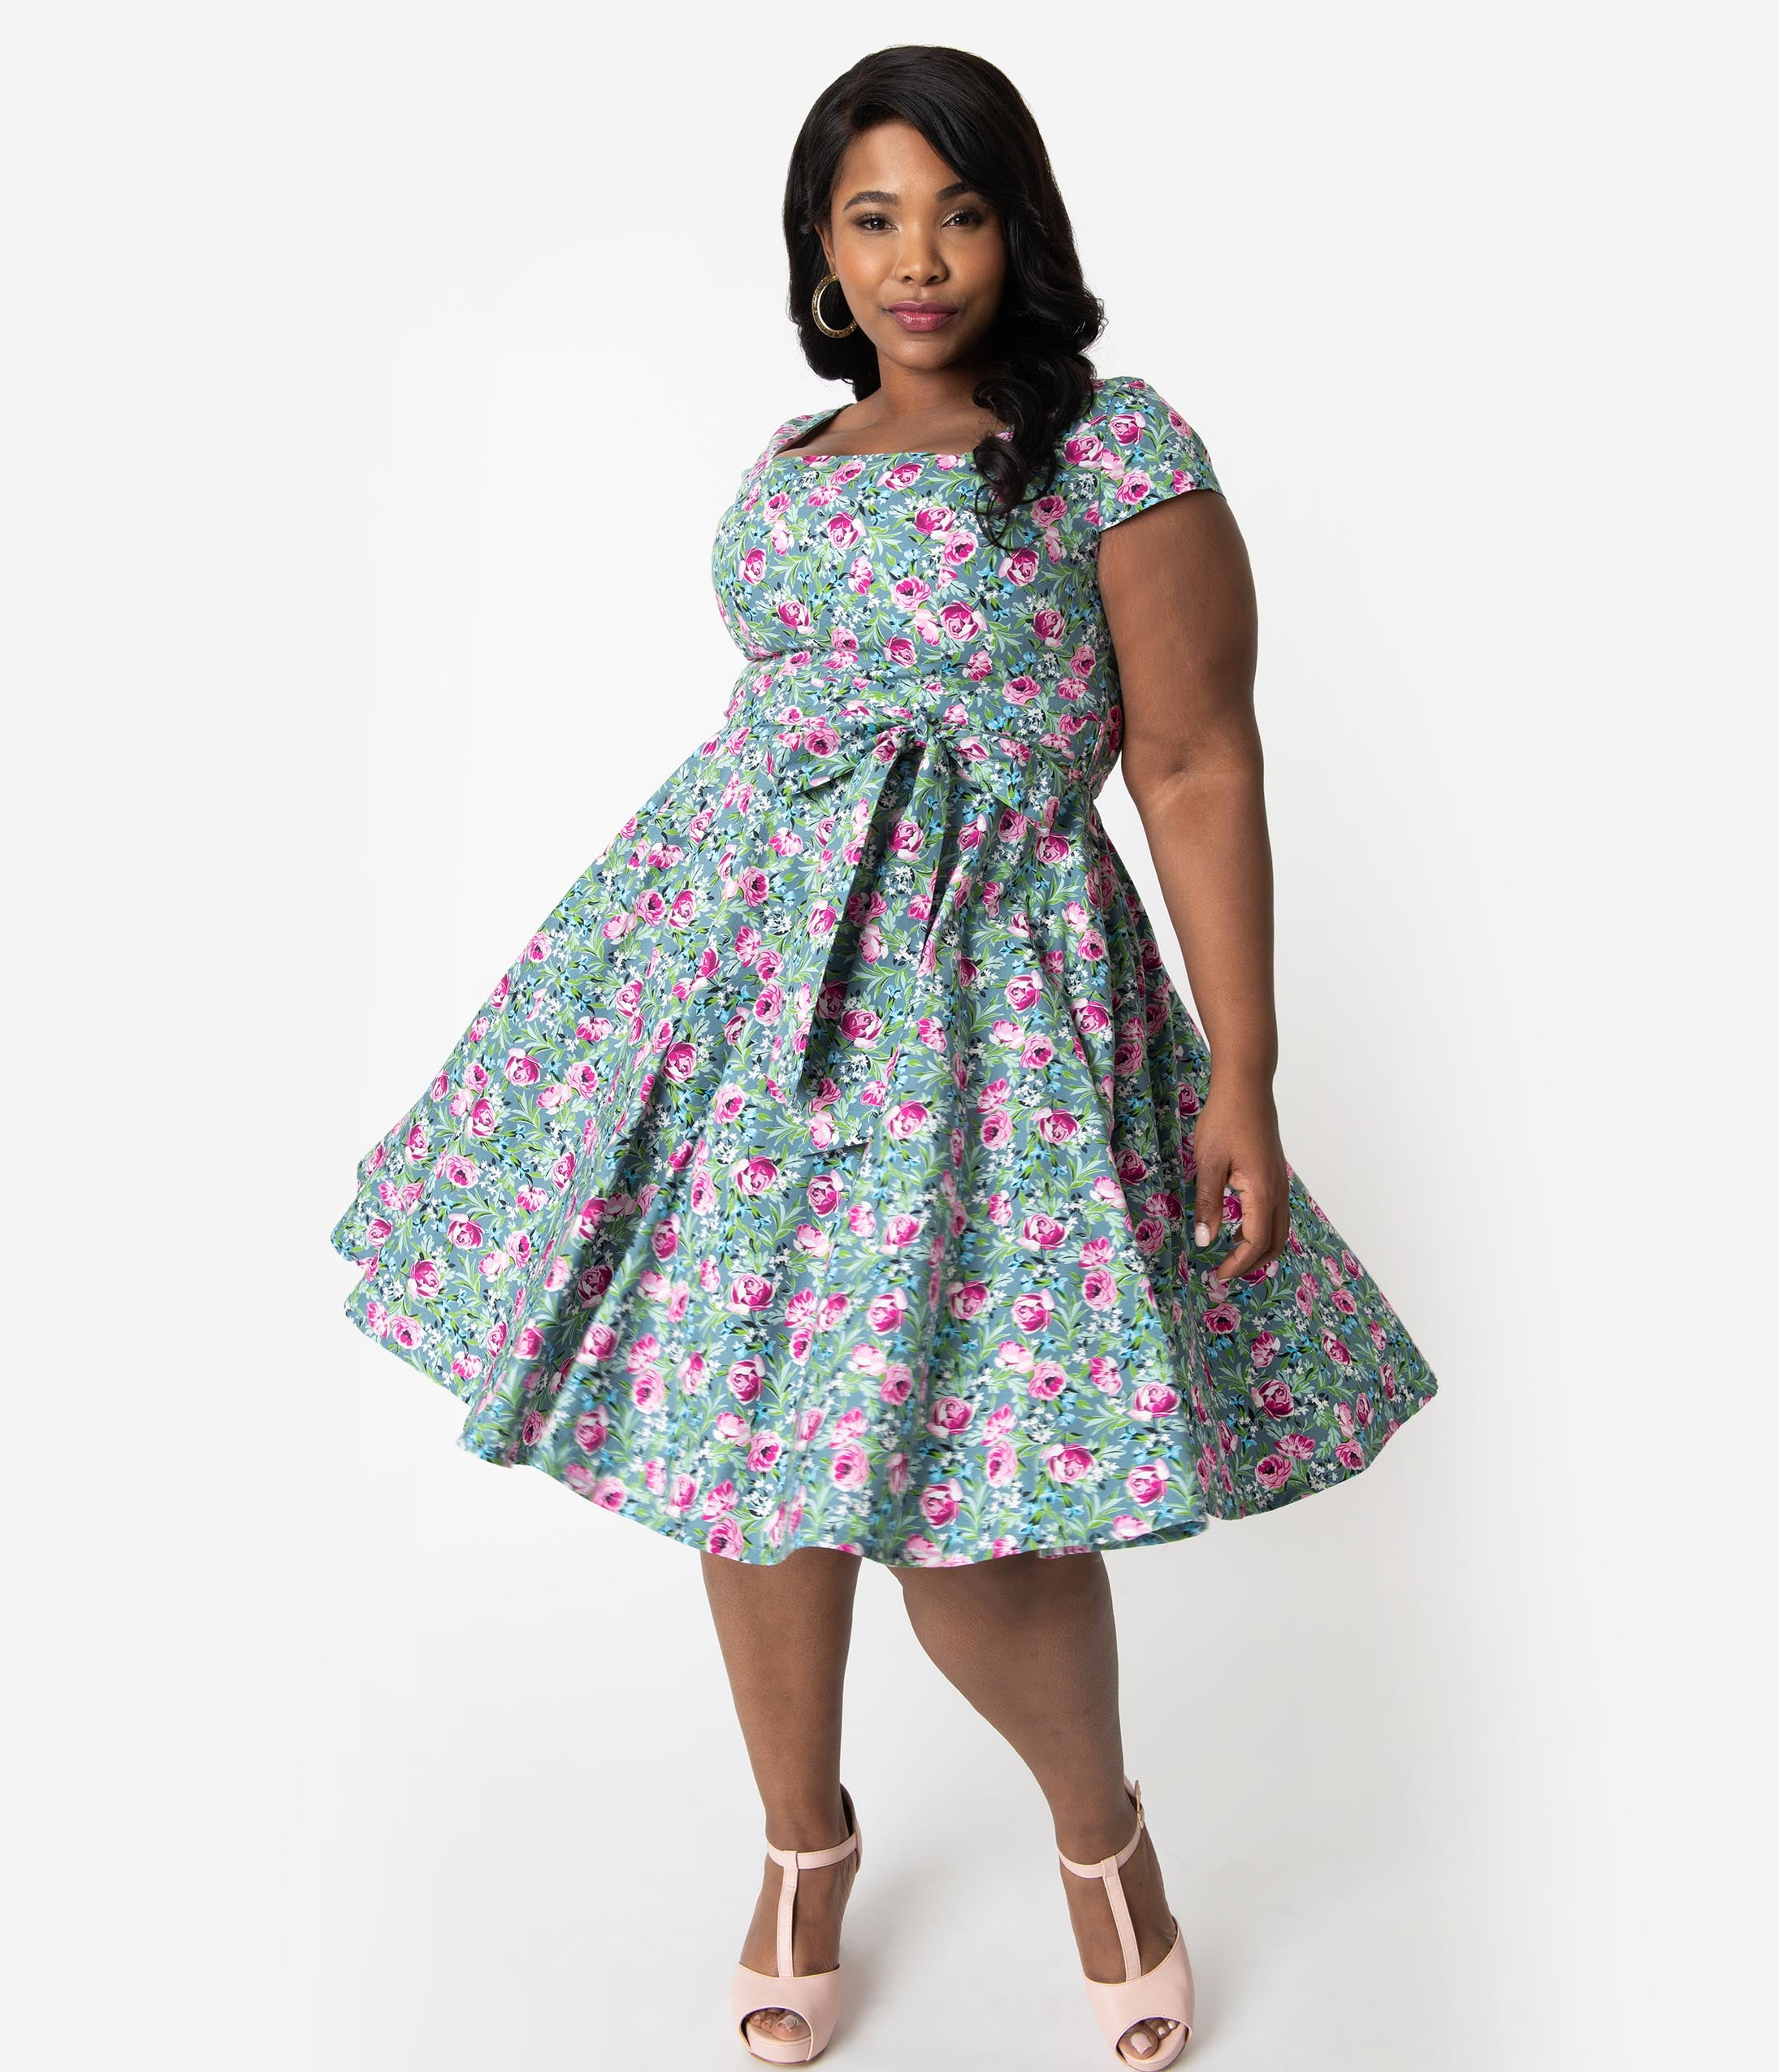 bd4130cfa4fd3 1950s Plus Size Dresses, Clothing and Costumes Plus Size Retro Style Green  Pink Lovely Floral